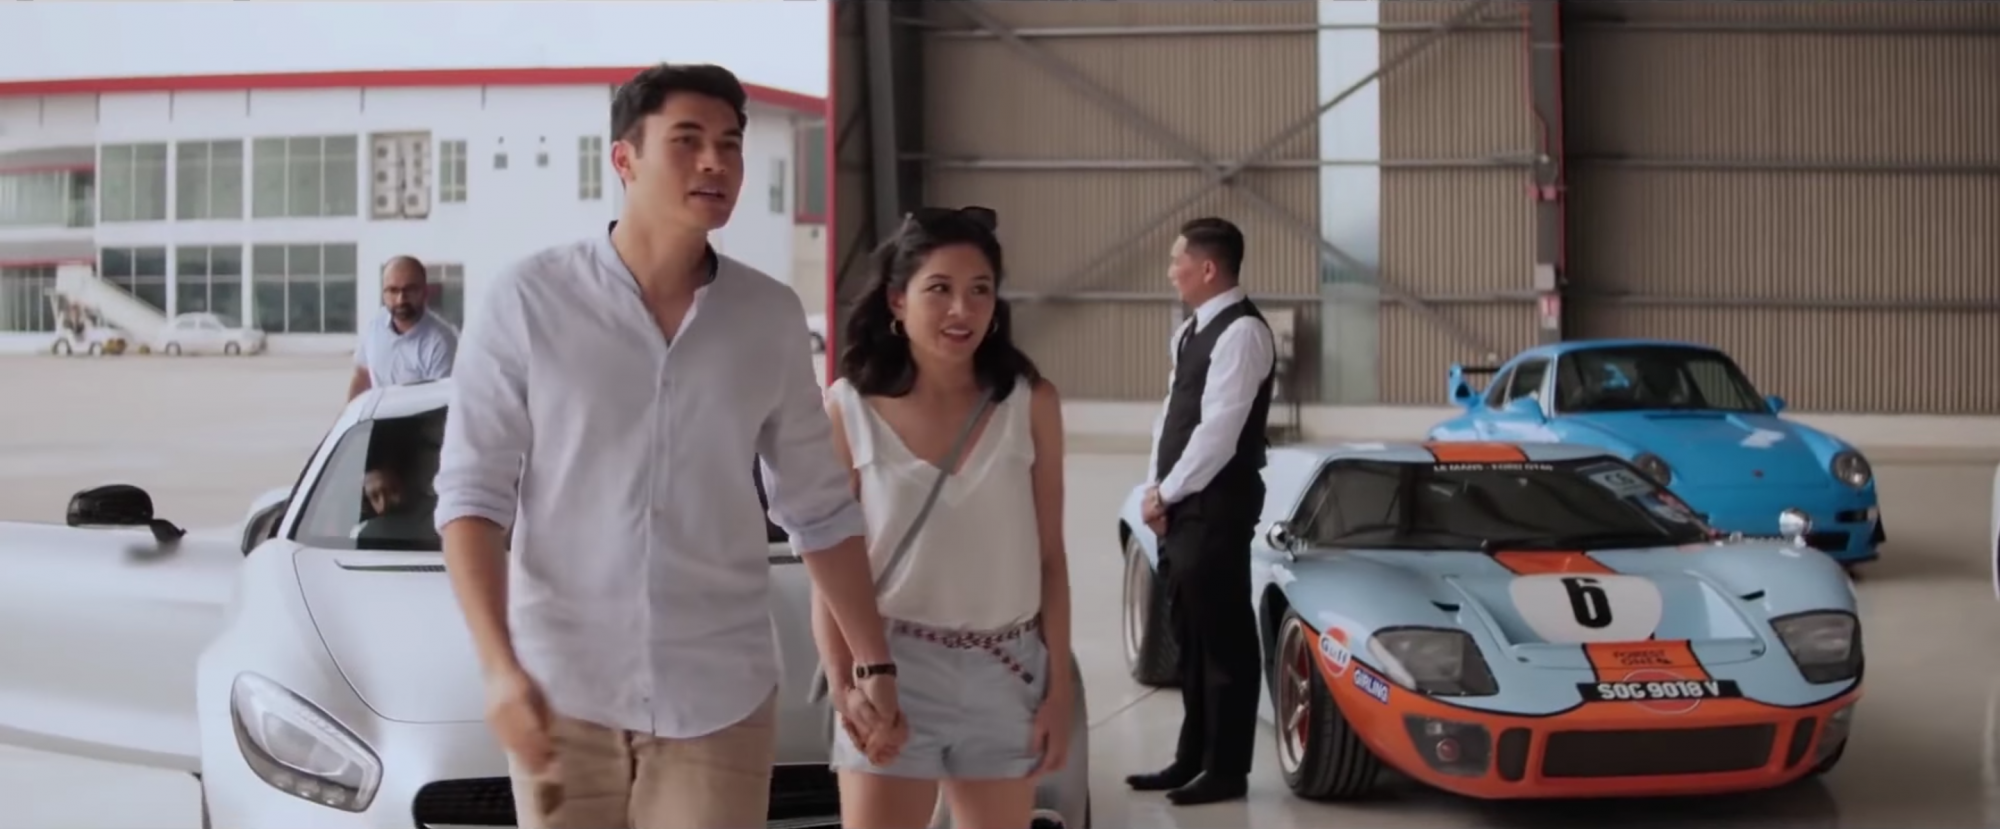 The 'Crazy Rich Asians' Teaser Trailer Is Finally Out